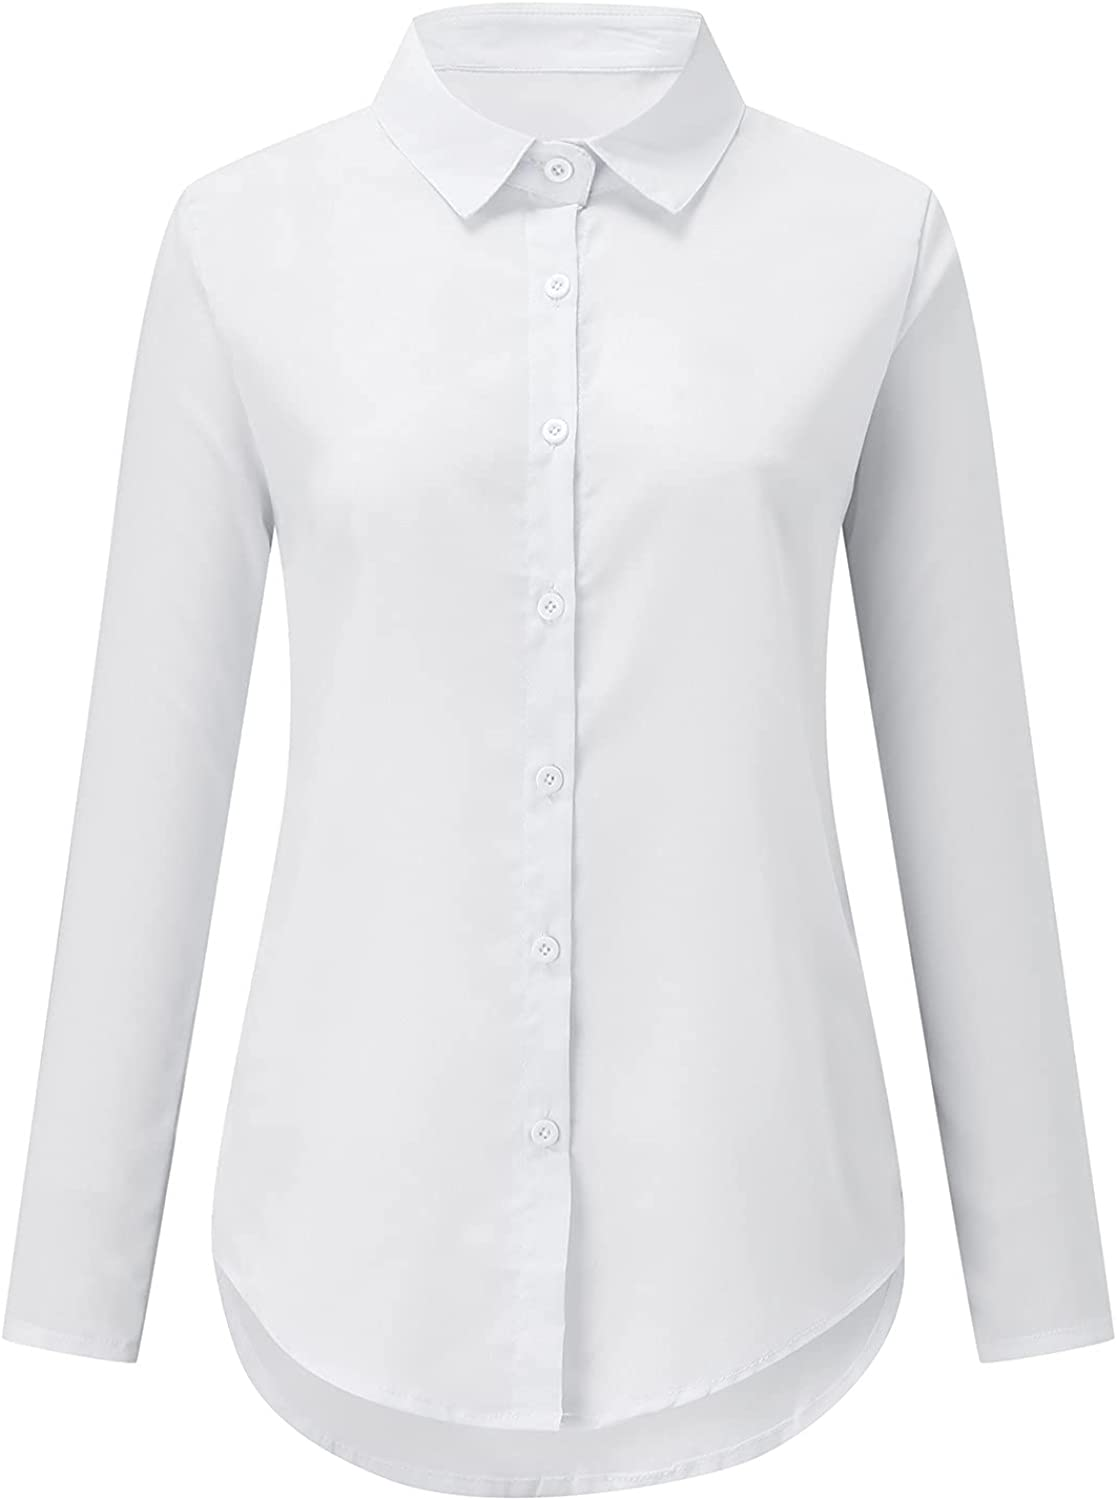 Women Casual Tops Button Down Sexy V Neck Long Sleeves Roll Up Casual Loose Puffed Solid Color Blouse Shirt